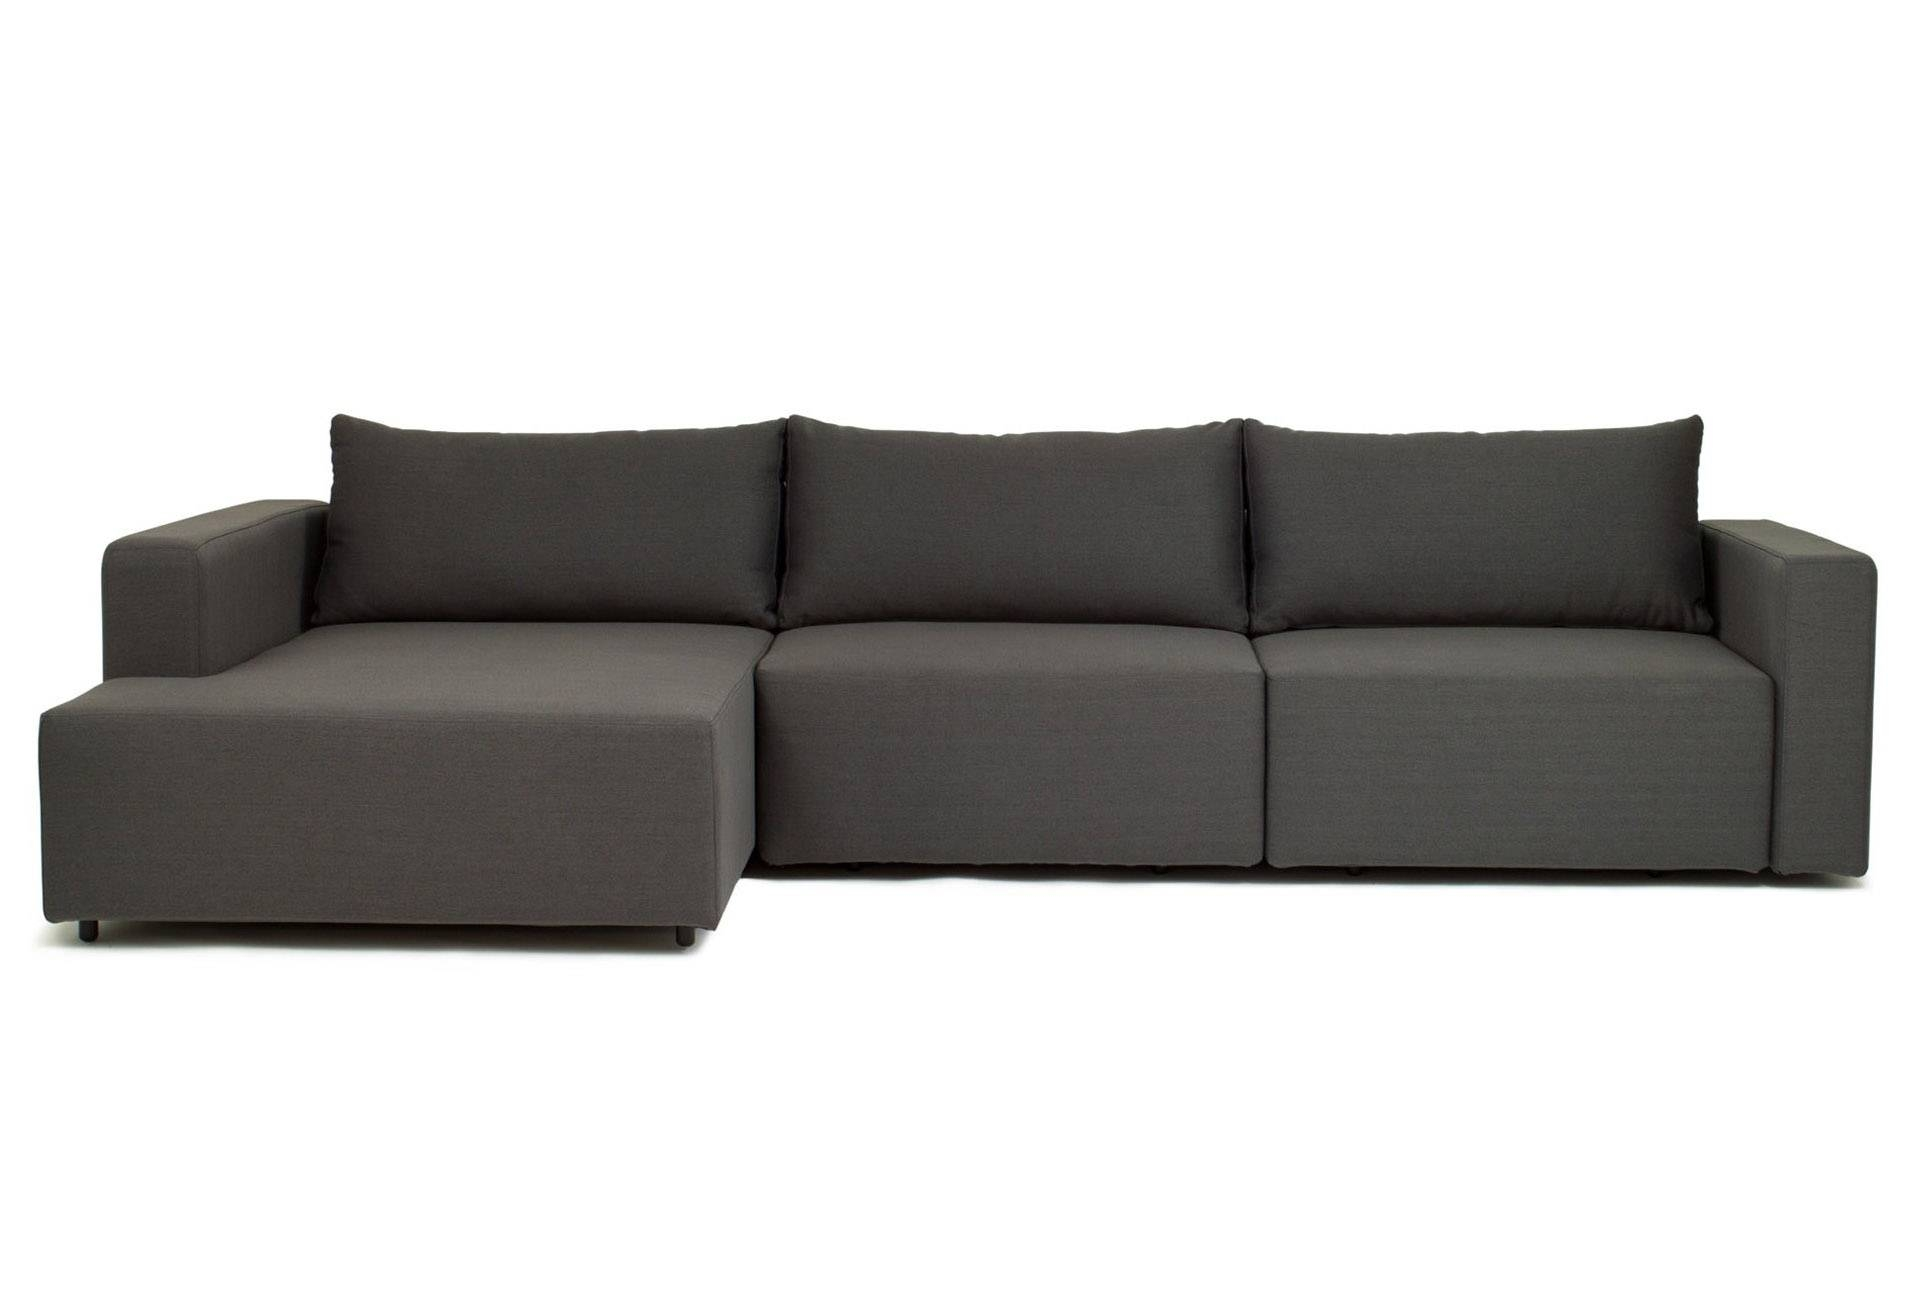 Block 3 Seat - Corner Sofa Bed | Loungelovers throughout Corner Couch Bed (Image 6 of 30)